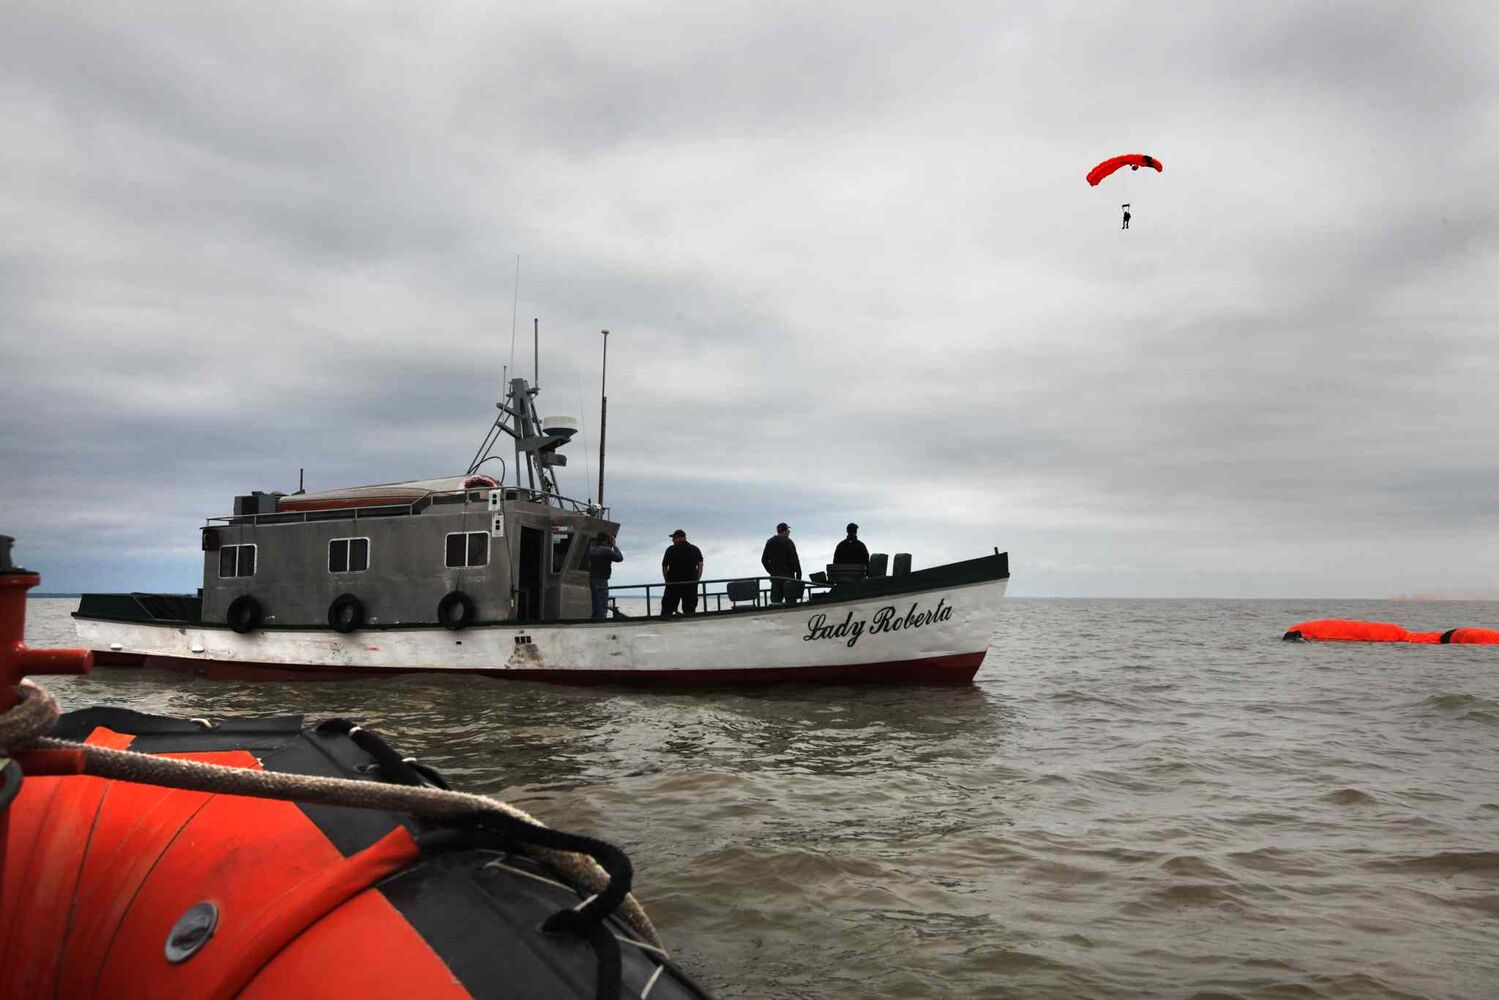 A second SAR tech approaches the boat and the water.